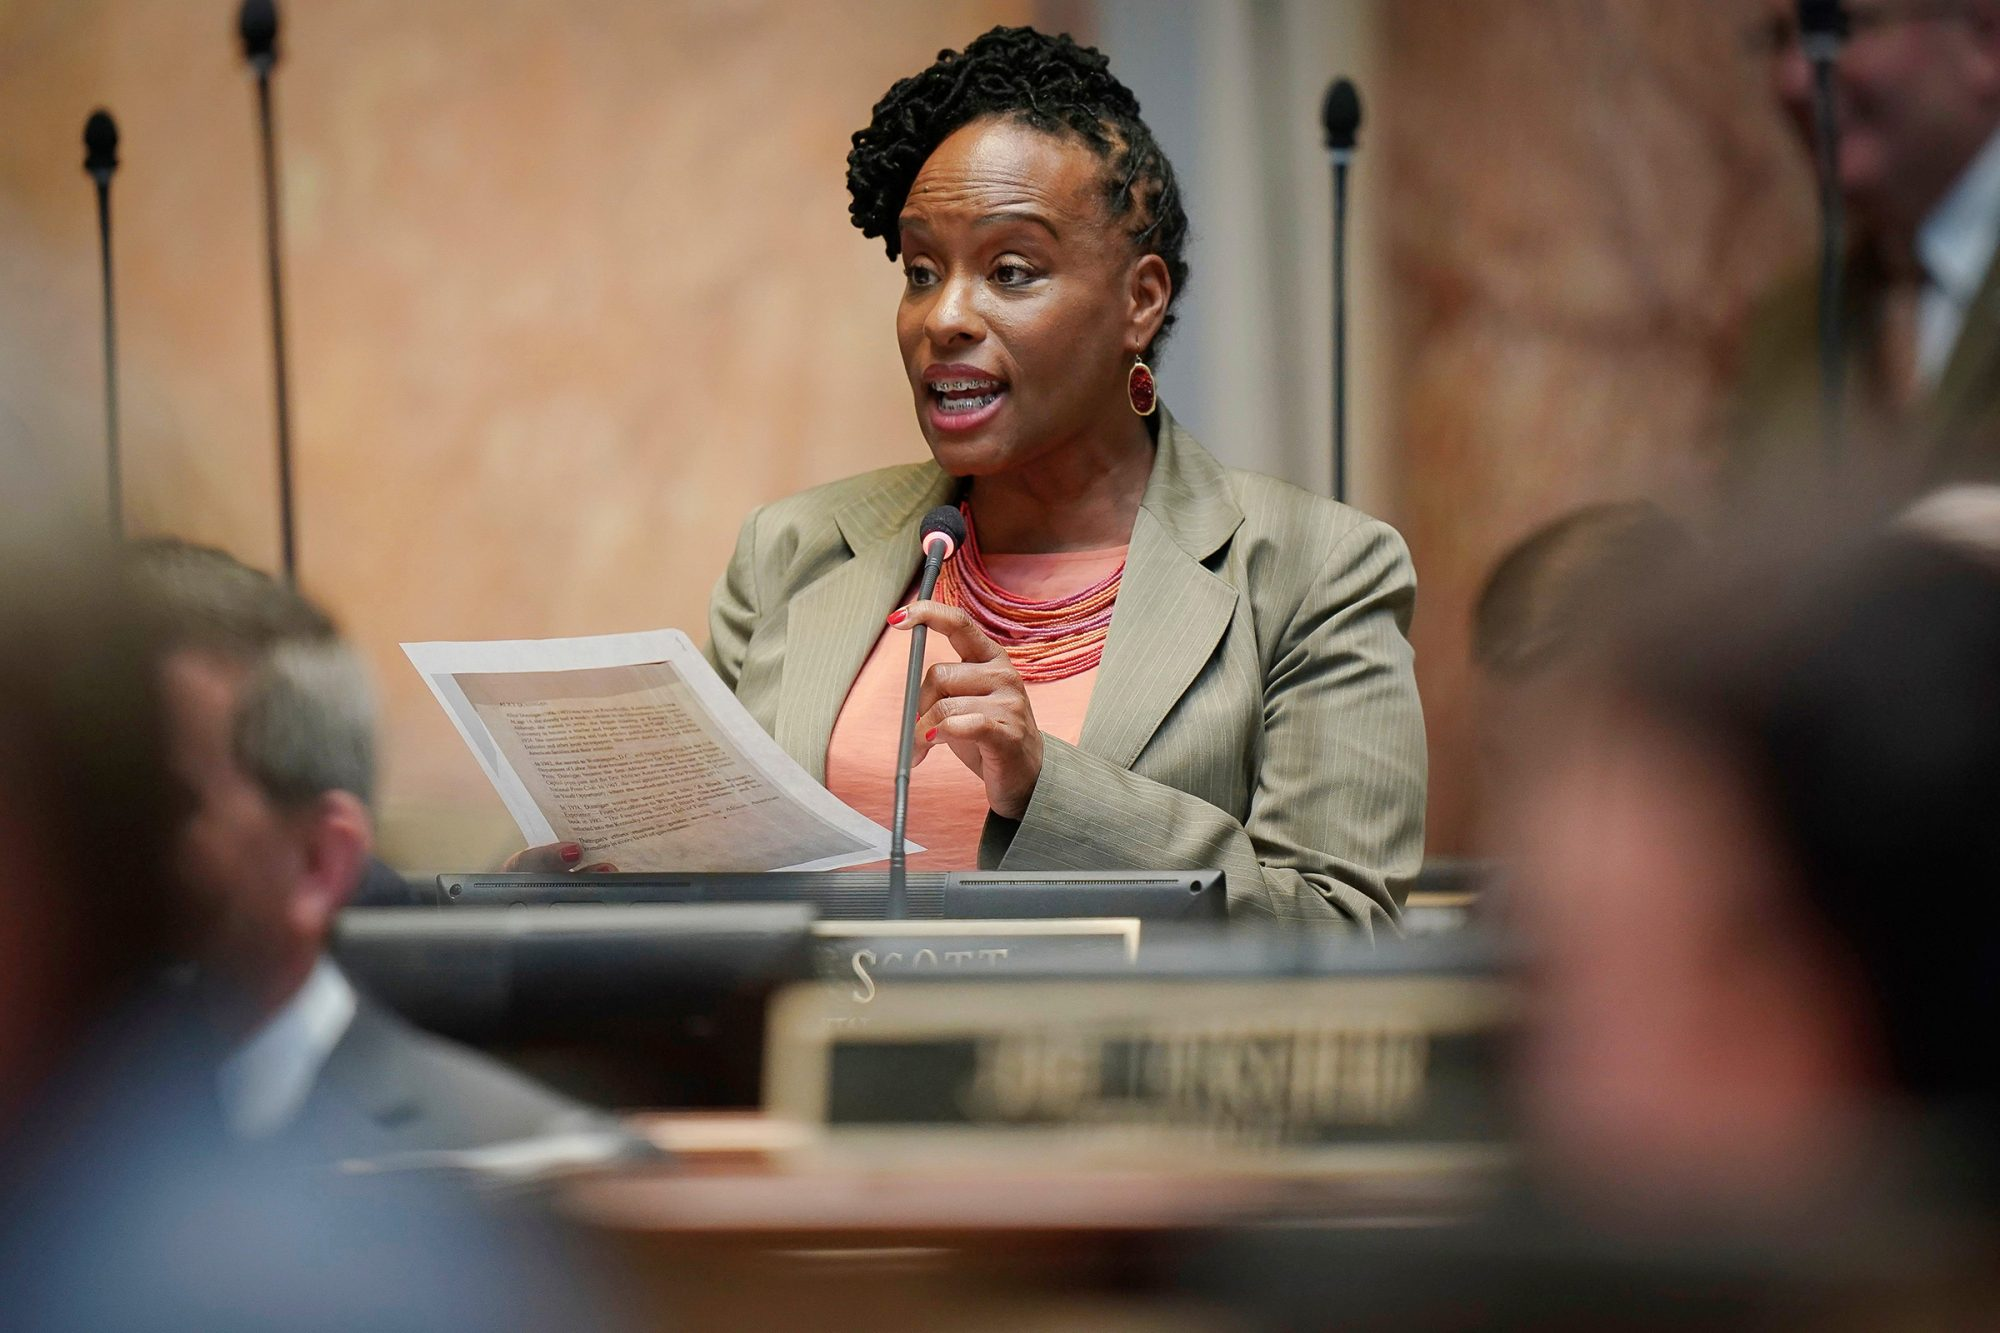 Kentucky Democratic State Representative Attica Scott